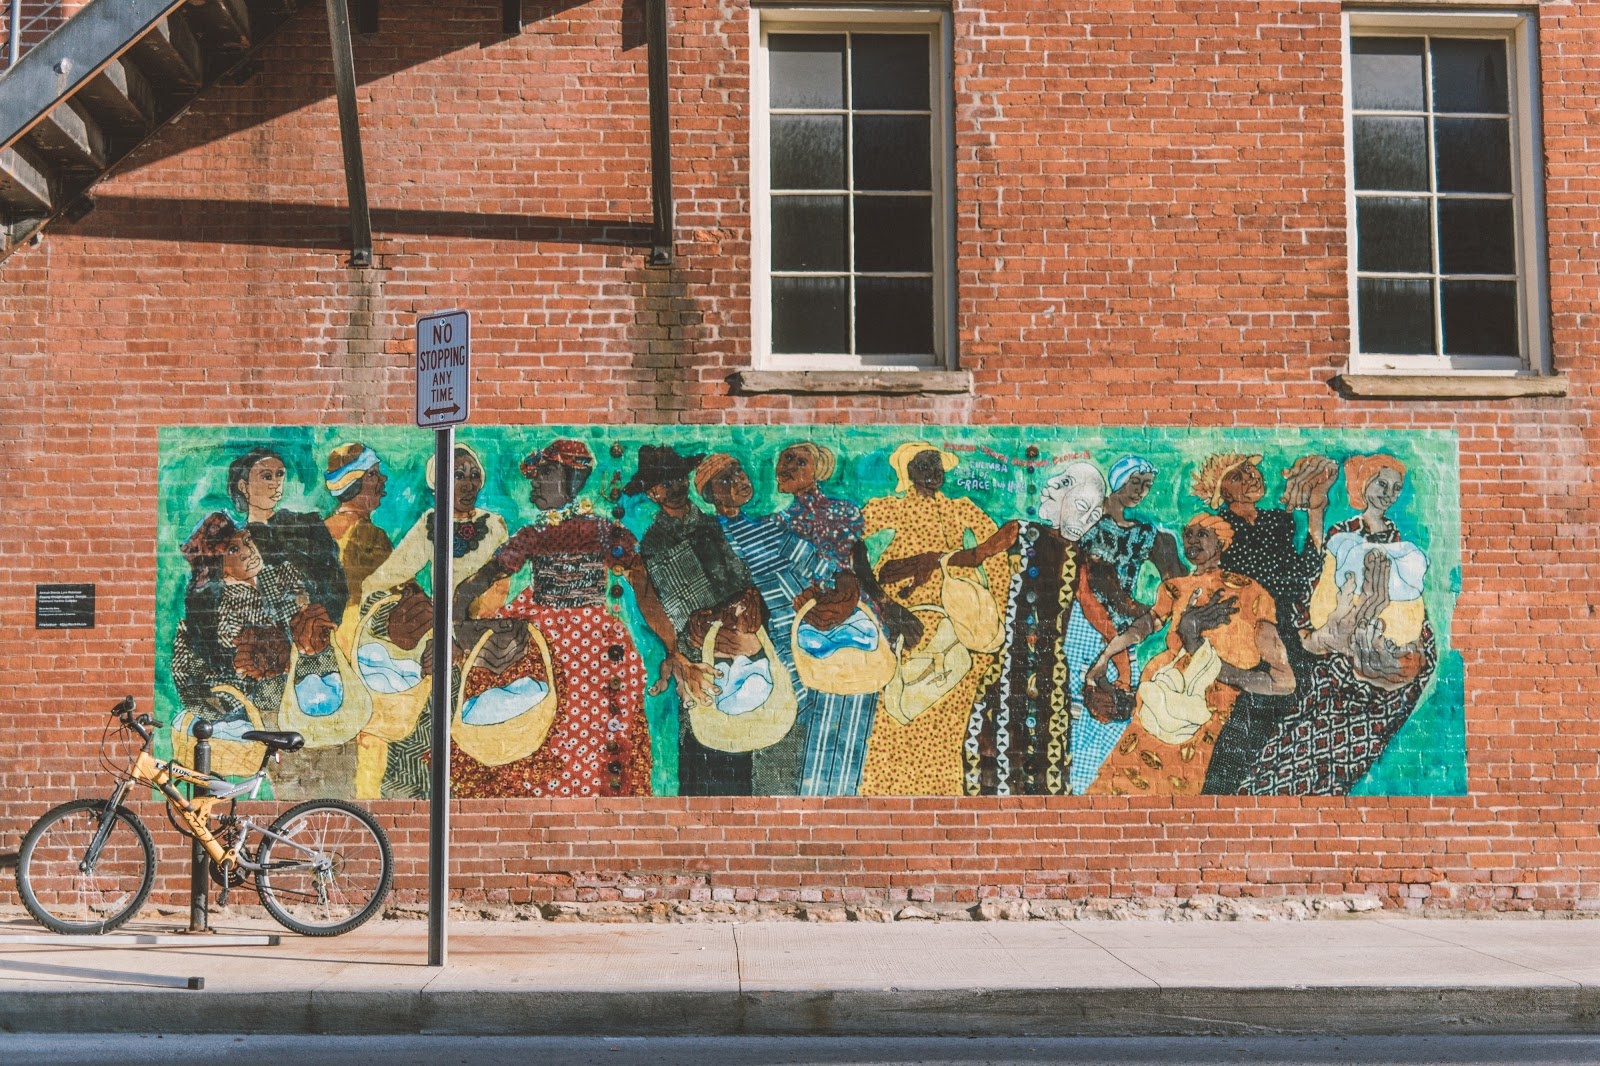 Mural of Black Women with baskets and various color outfits. This represents kinship and the Great Migration to the North.